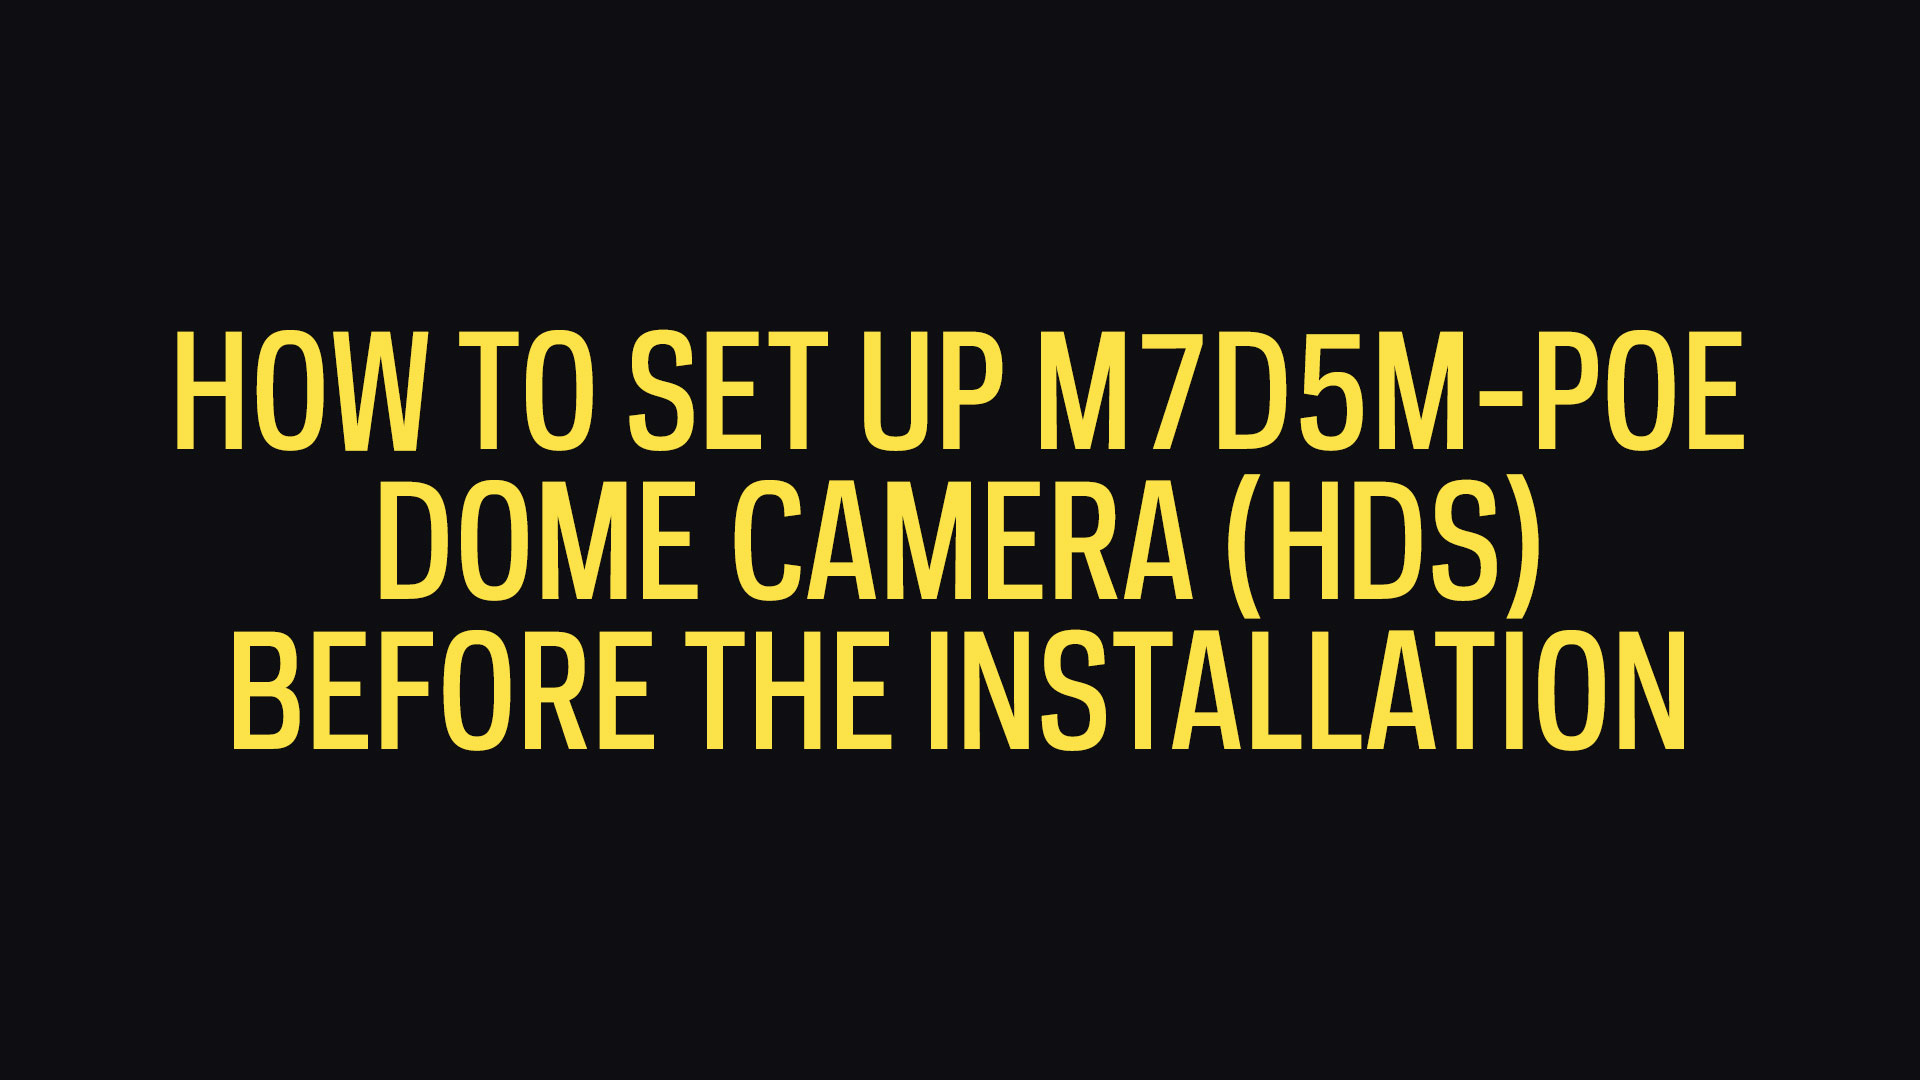 How To Set Up 5MP Dome Camera (HDS) Before The Installation